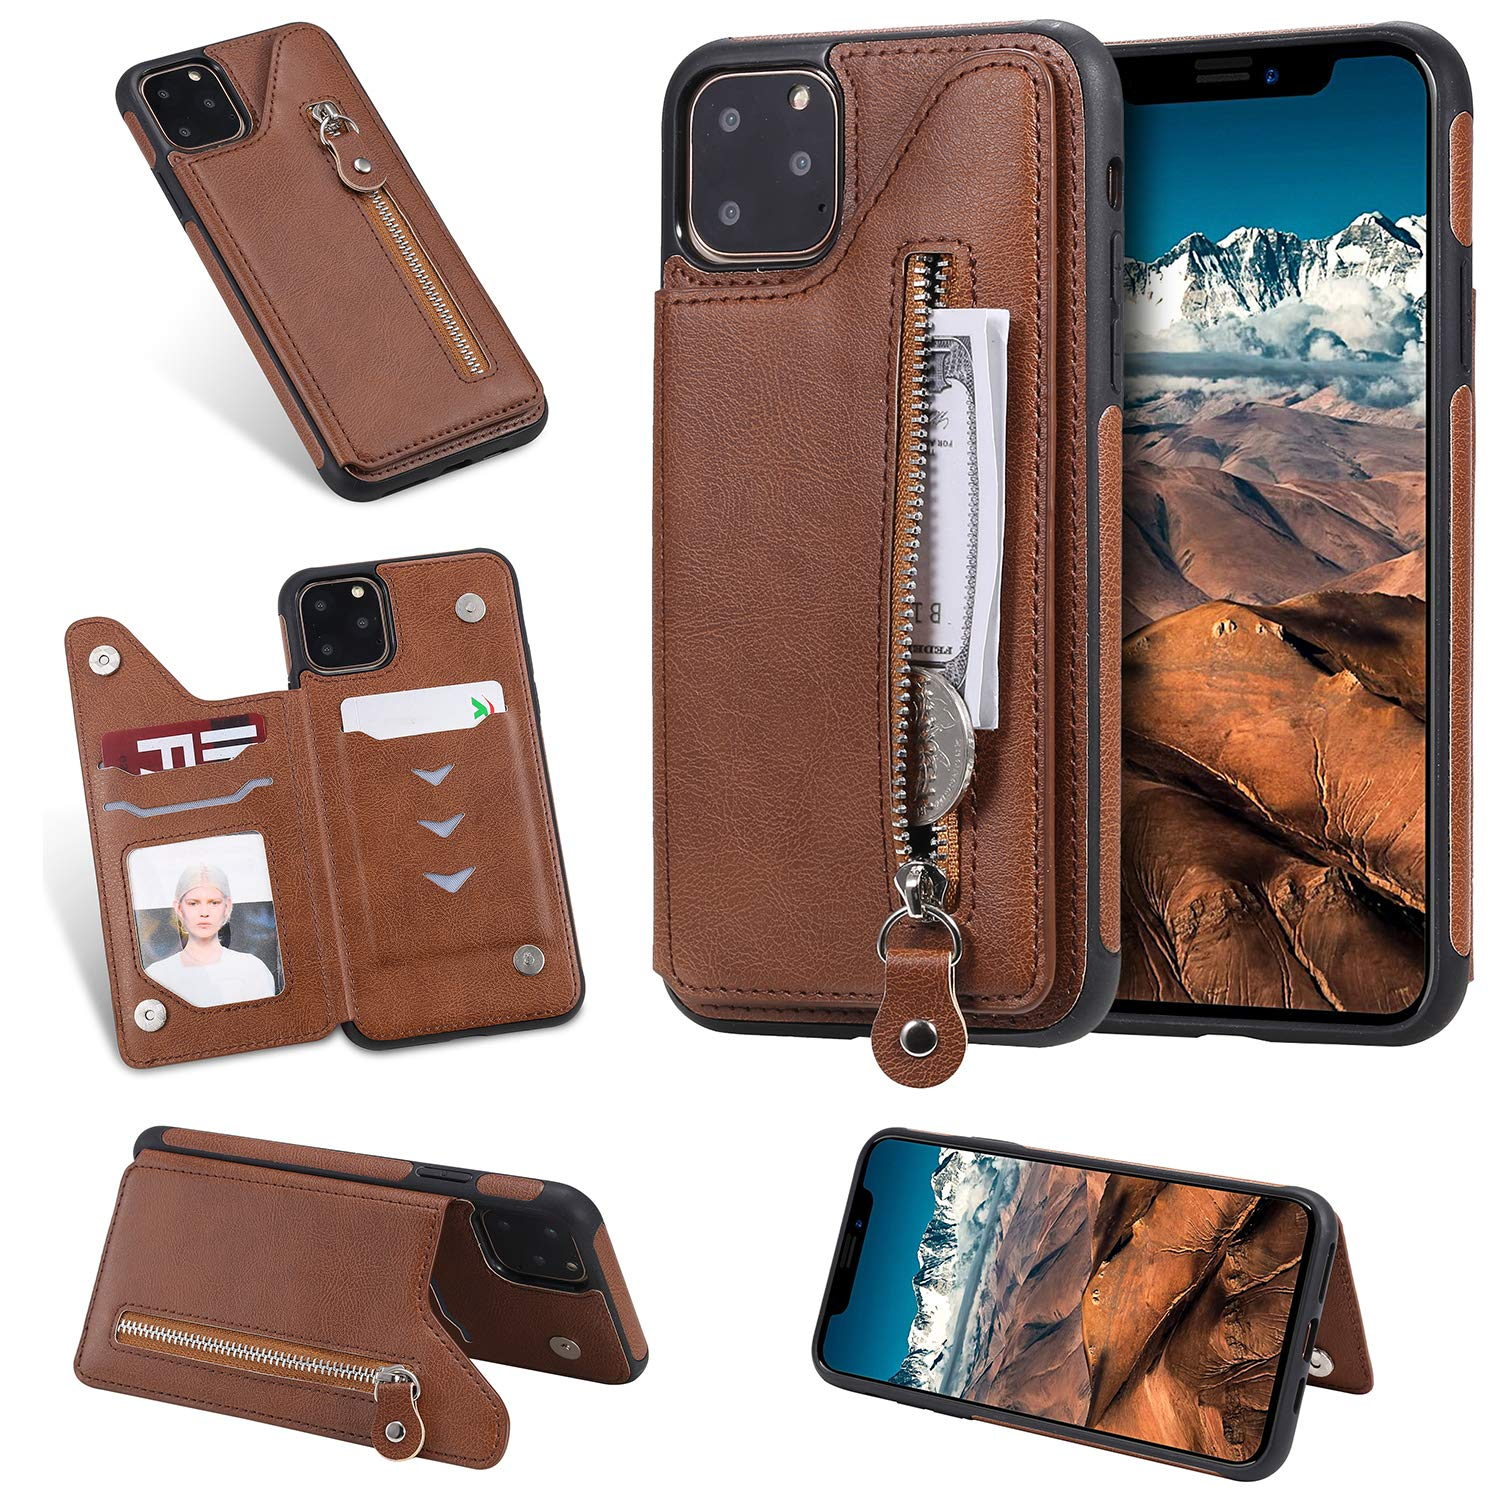 Tznzxm iPhone 2019 (XI Max) 6.5'' Case, Luxury Zipper PU Leather Kickstand Card Slots Double Magnetic Clasp Durable Shockproof TPU Back Wallet Flip Cover for iPhone XI Max/iPhone 11 Pro Max Brown by Tznzxm